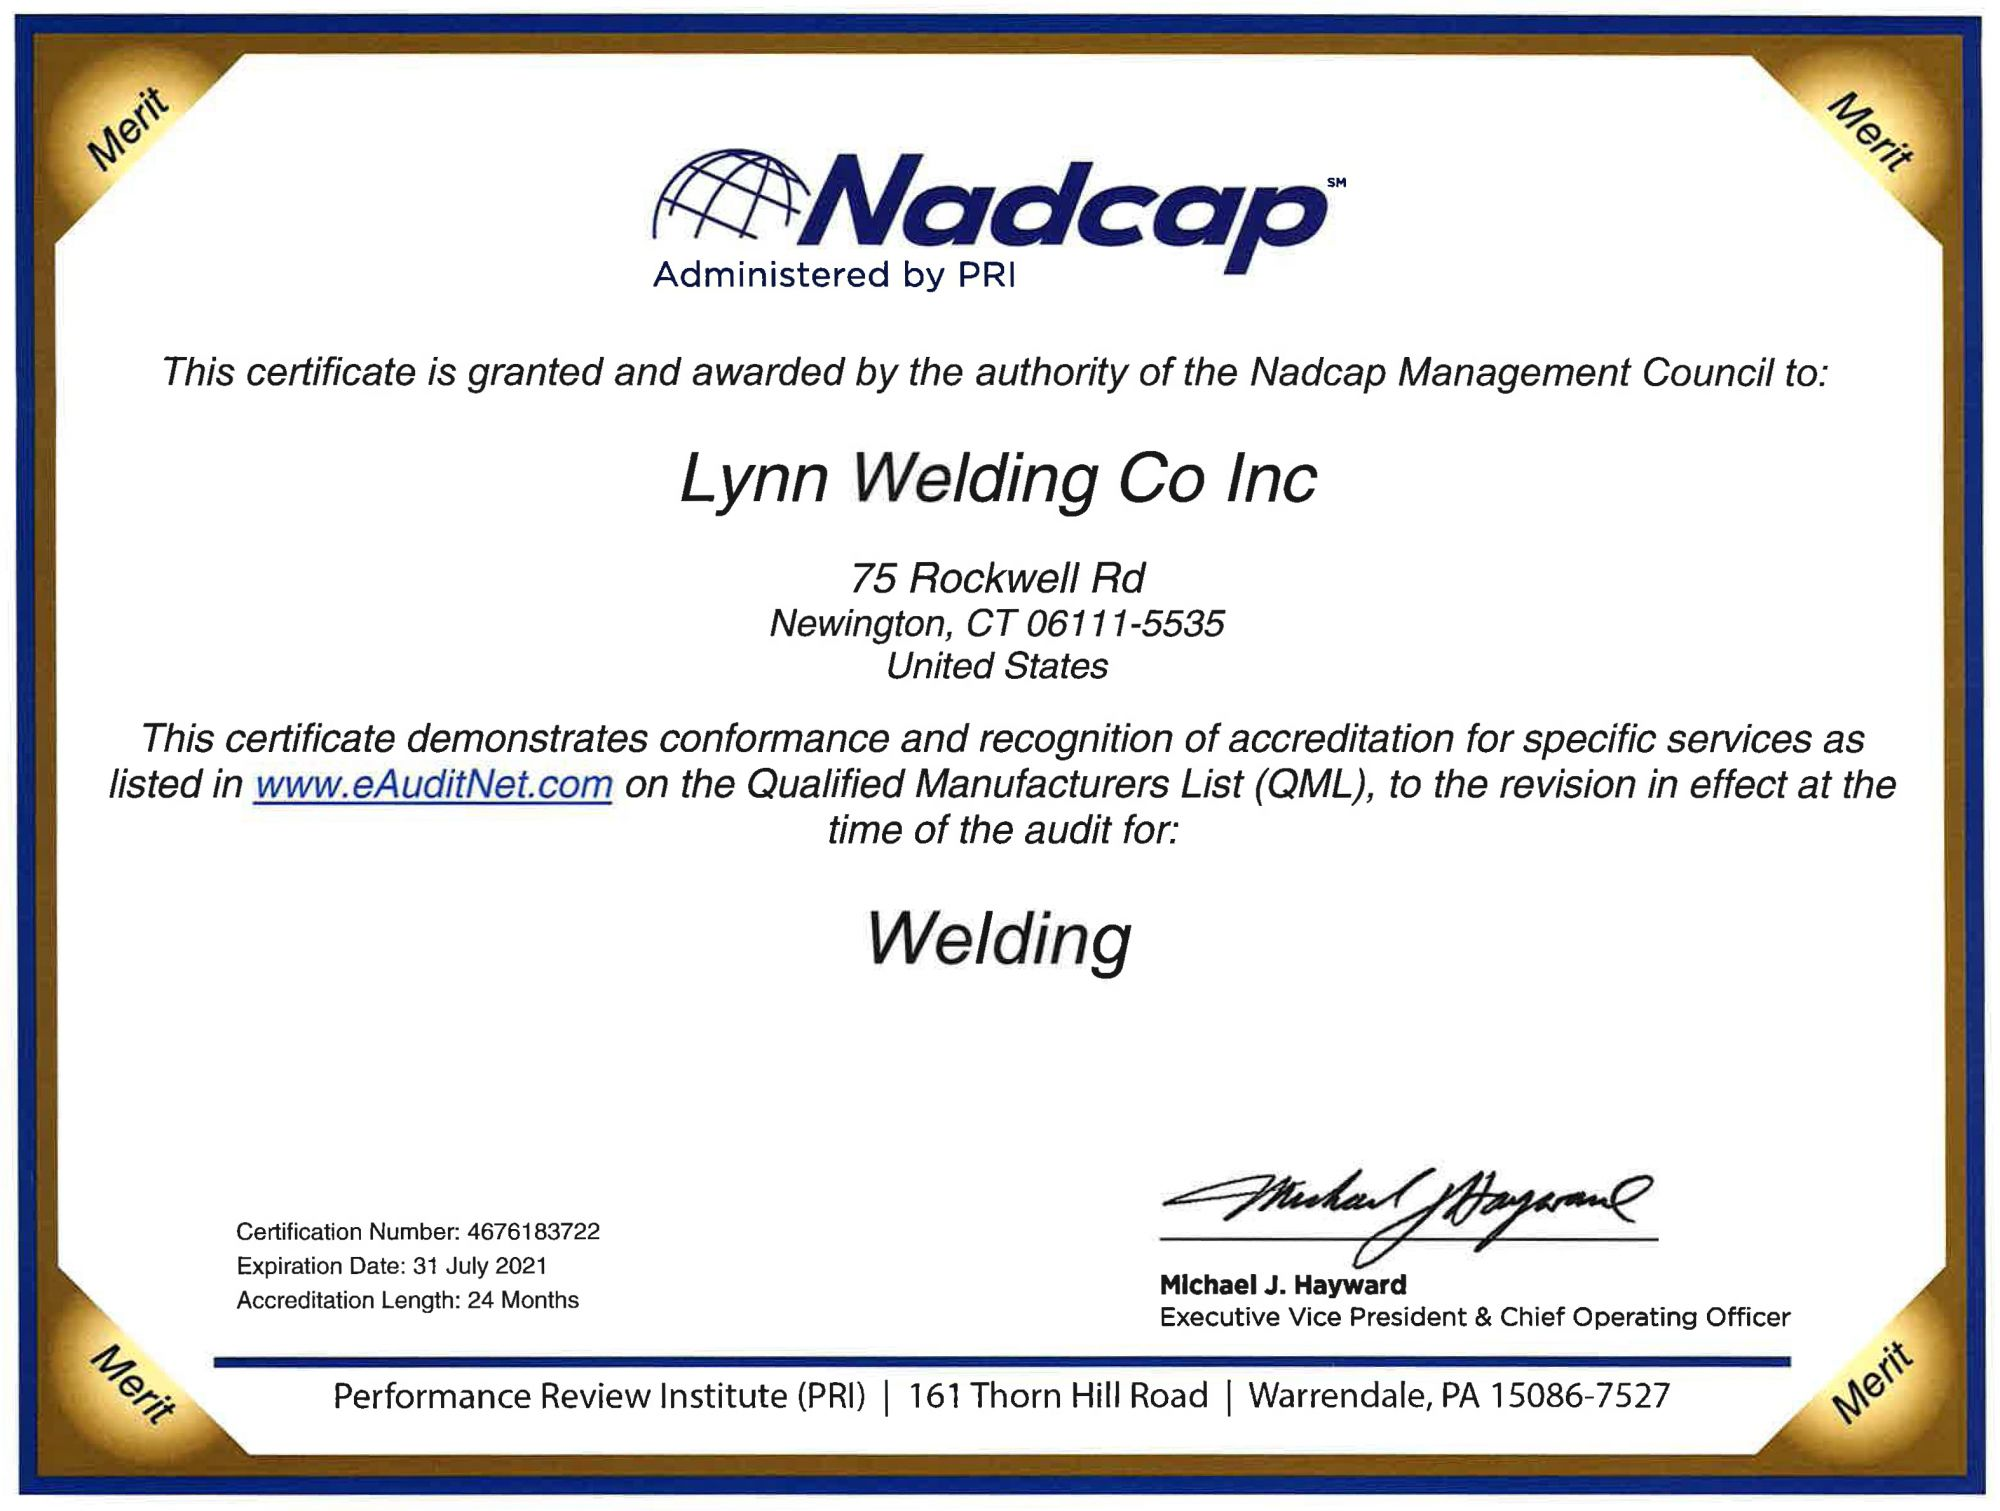 Nadcap Approved Services & Certified Welding